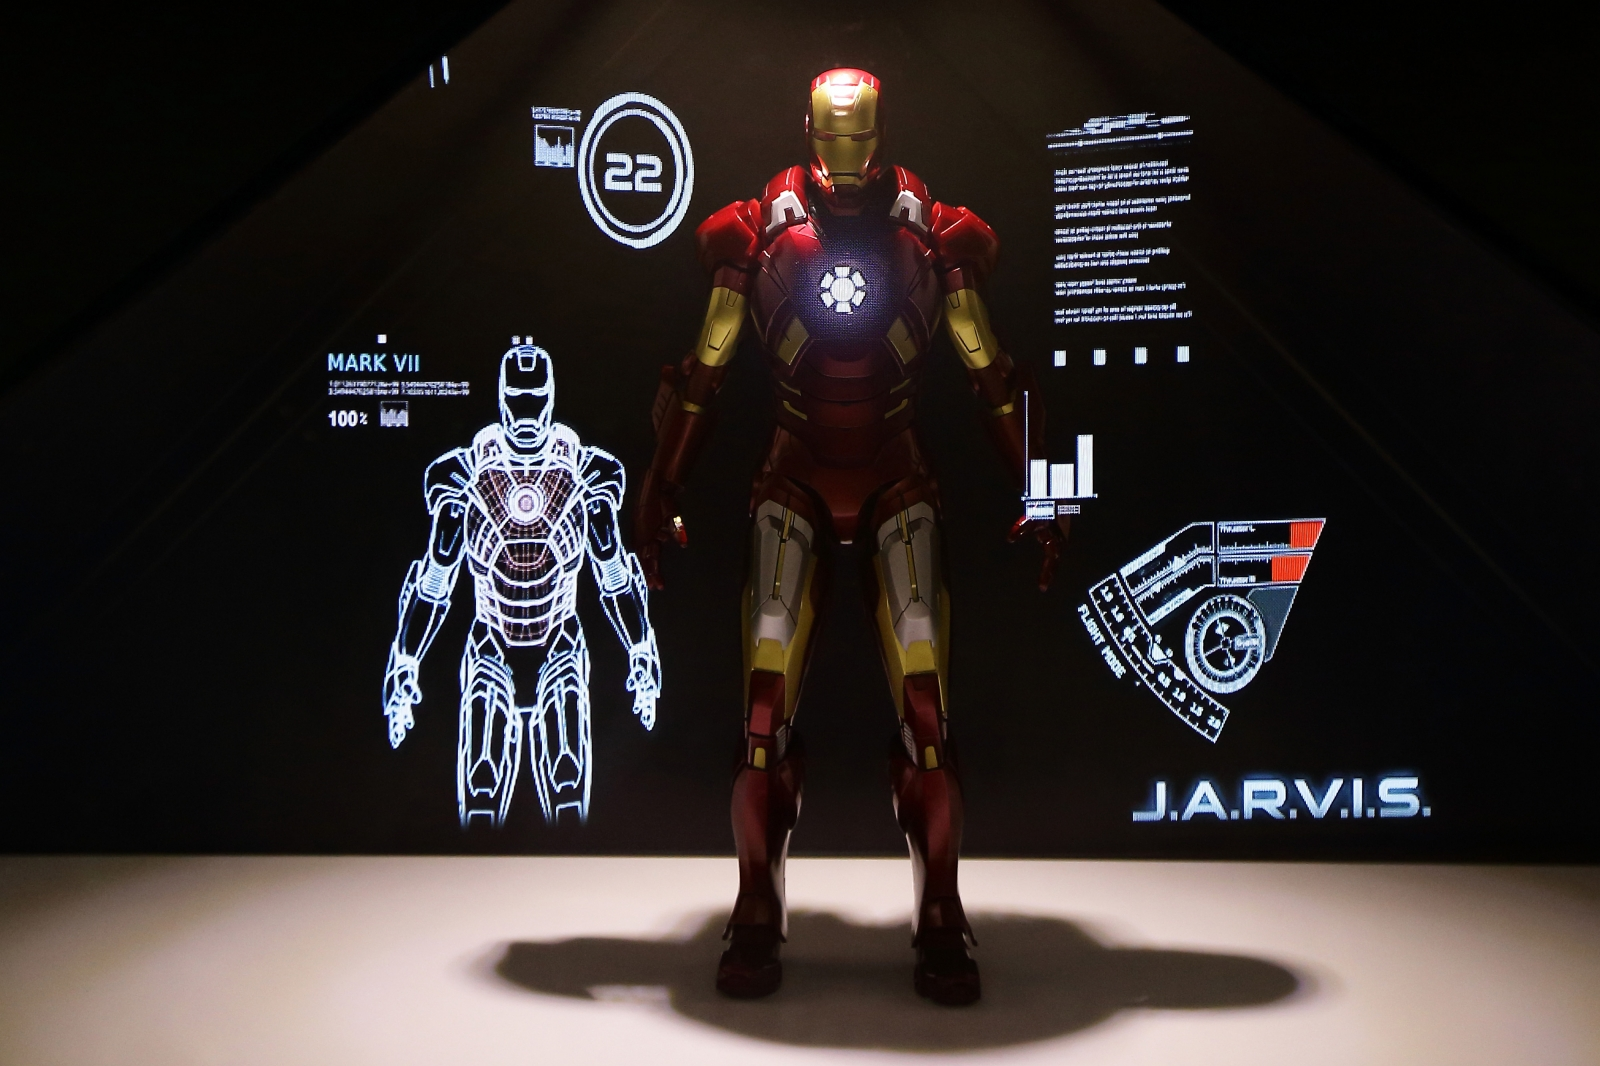 An Iron Man 3 email advertisement by Ladbrokes has been banned by the ASA